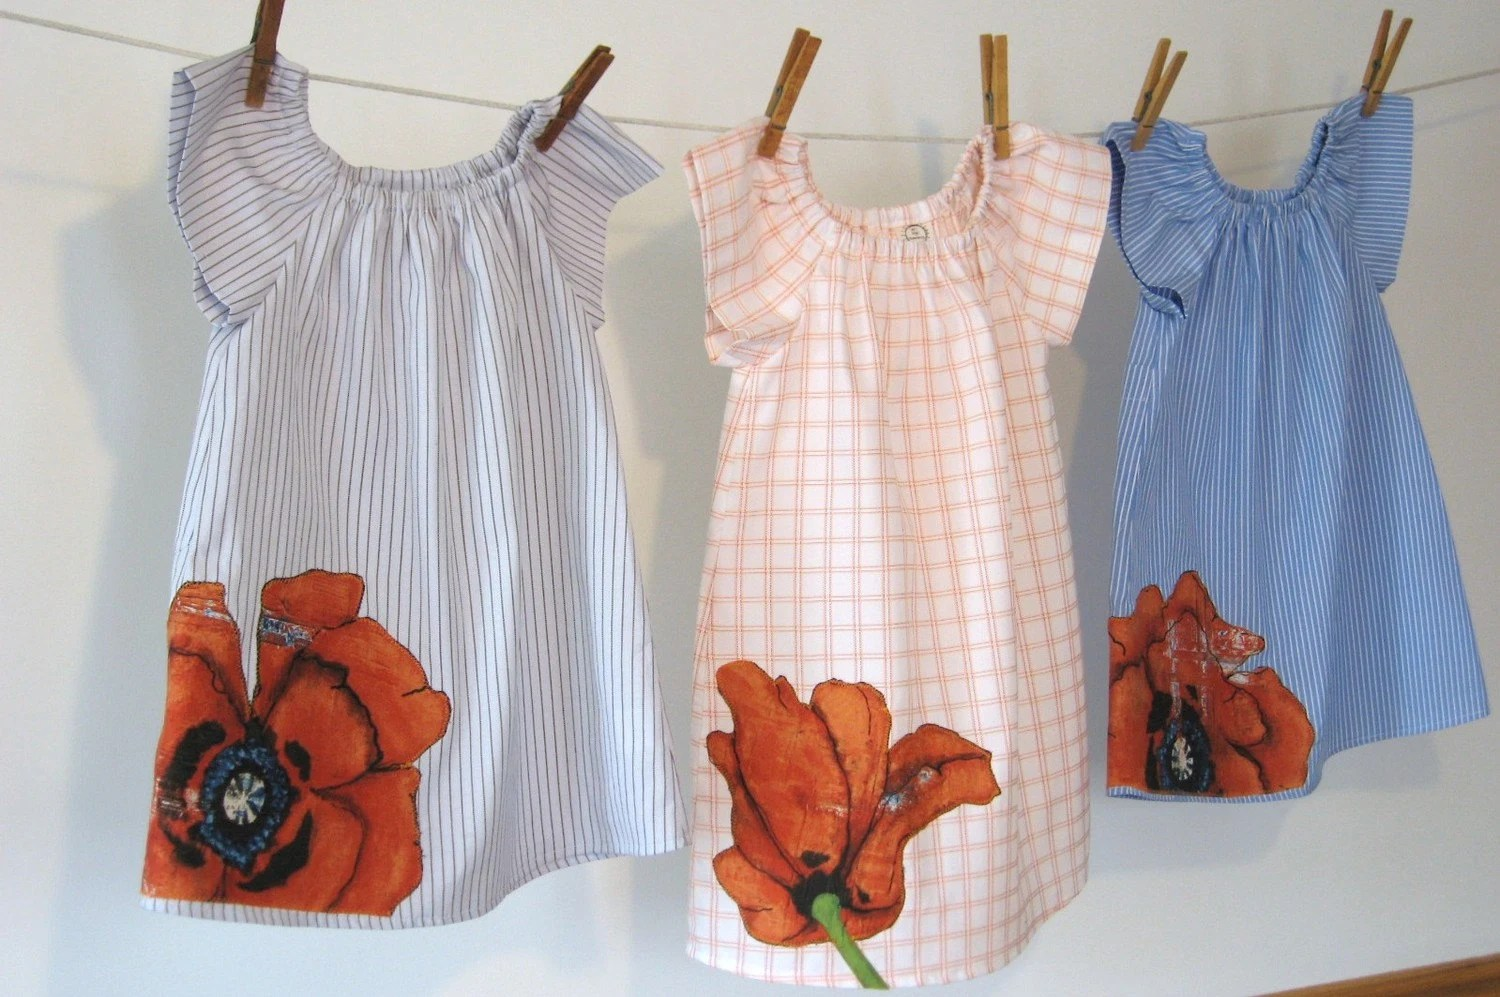 Upcycled poppy dress, sizes 6m - 6, in short sleeve, long sleeve, or 3/4 sleeve, 11161